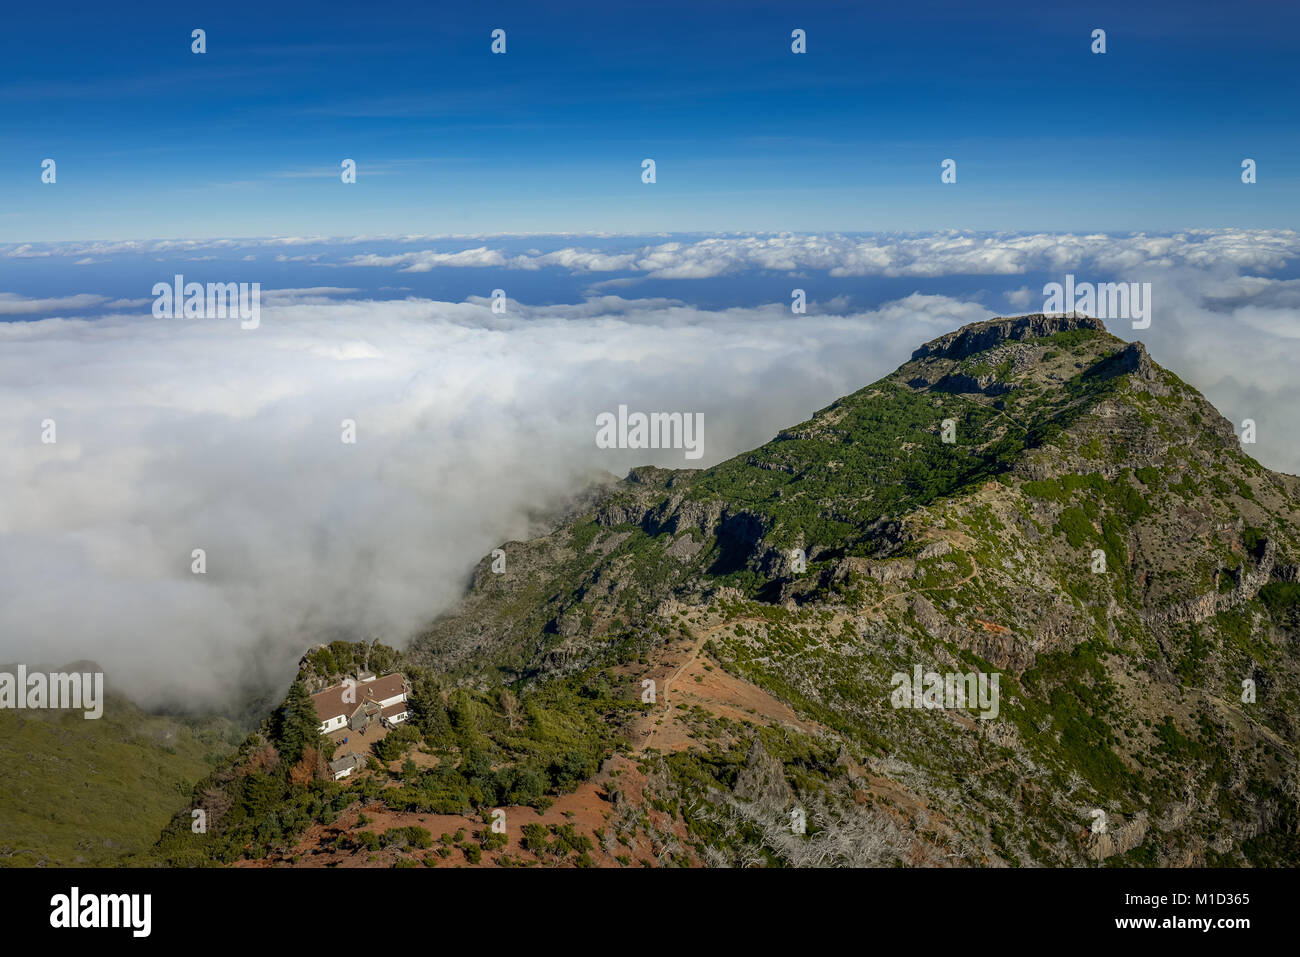 Mountain landscape of the Pico Ruivo, Central Mountains, Madeira, Portugal, Berglandschaft am Pico Ruivo, Zentralgebirge - Stock Image